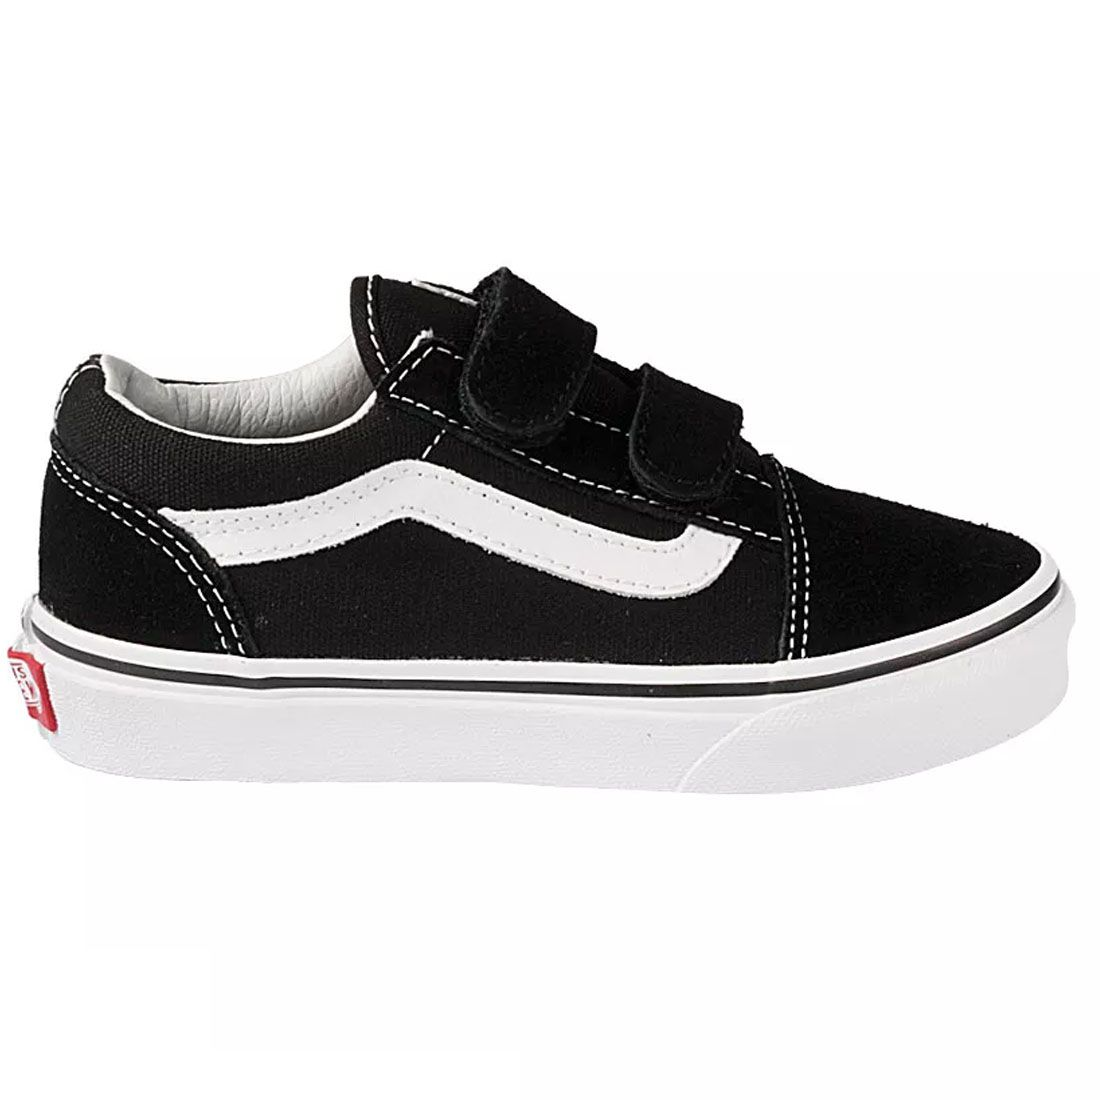 467c9d3bb5dc1 Tênis Vans Old Skool PS Infantil N.28